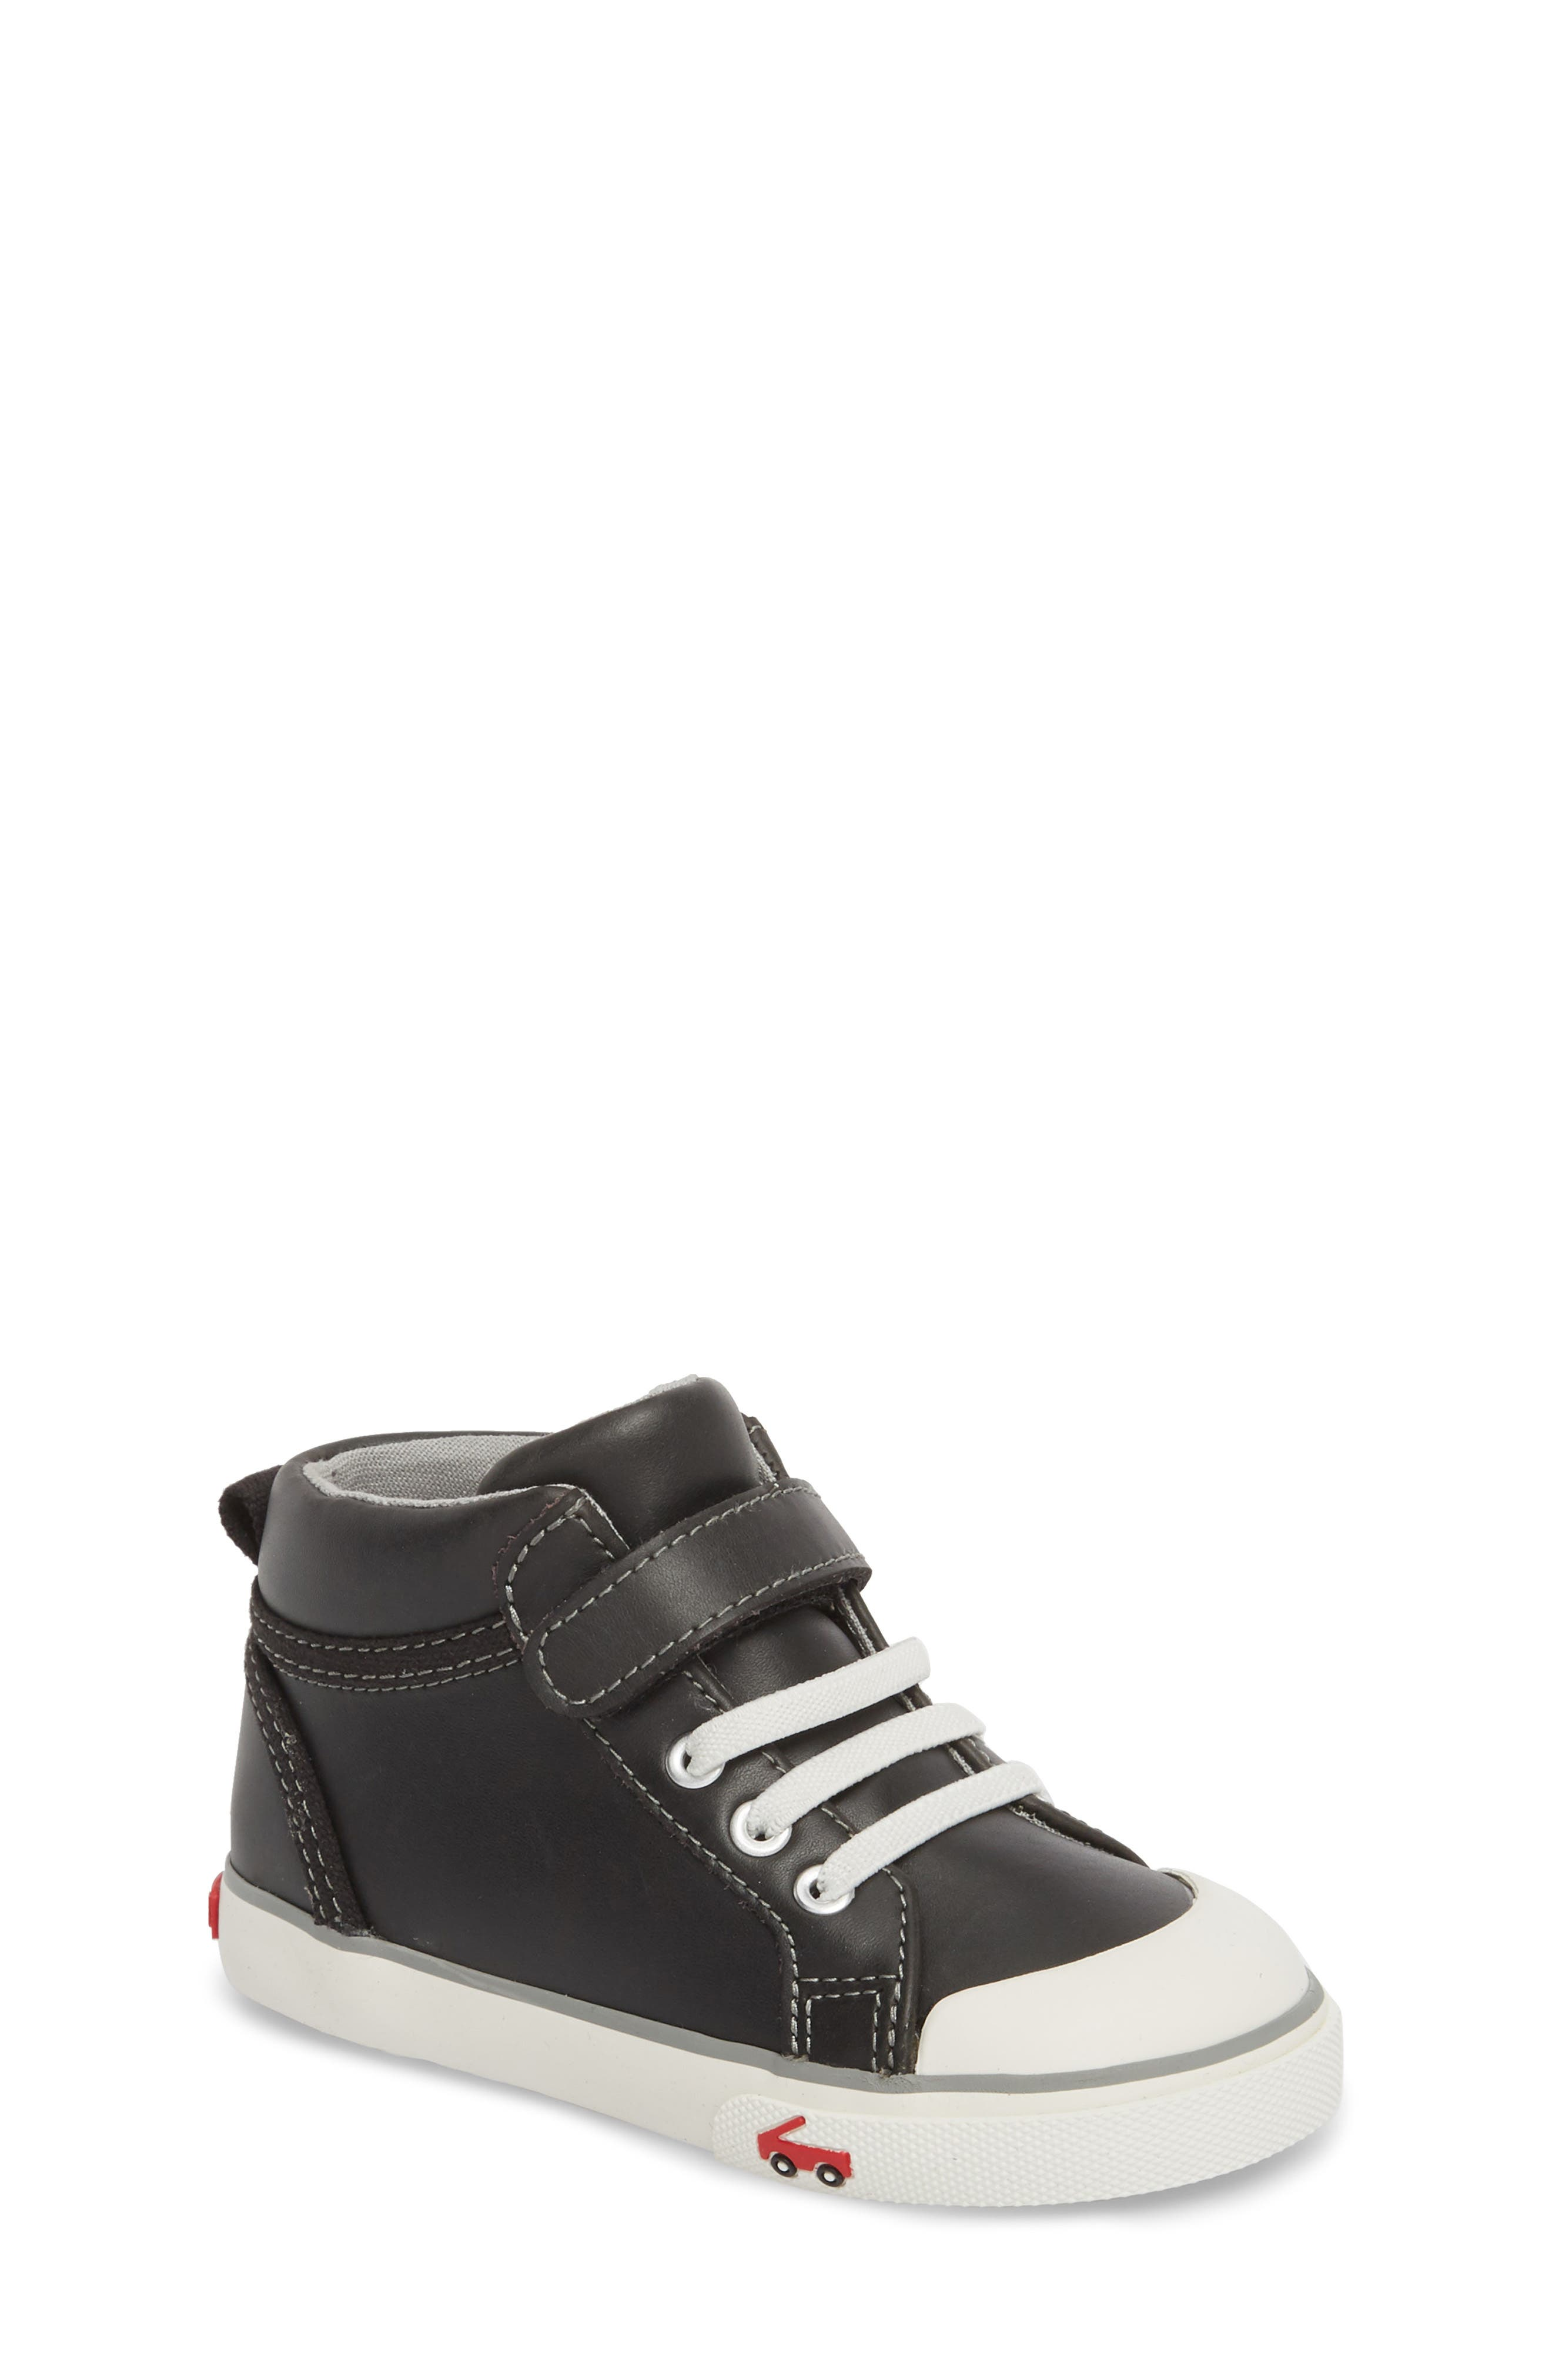 'Peyton' High Top Sneaker,                         Main,                         color, Black Leather